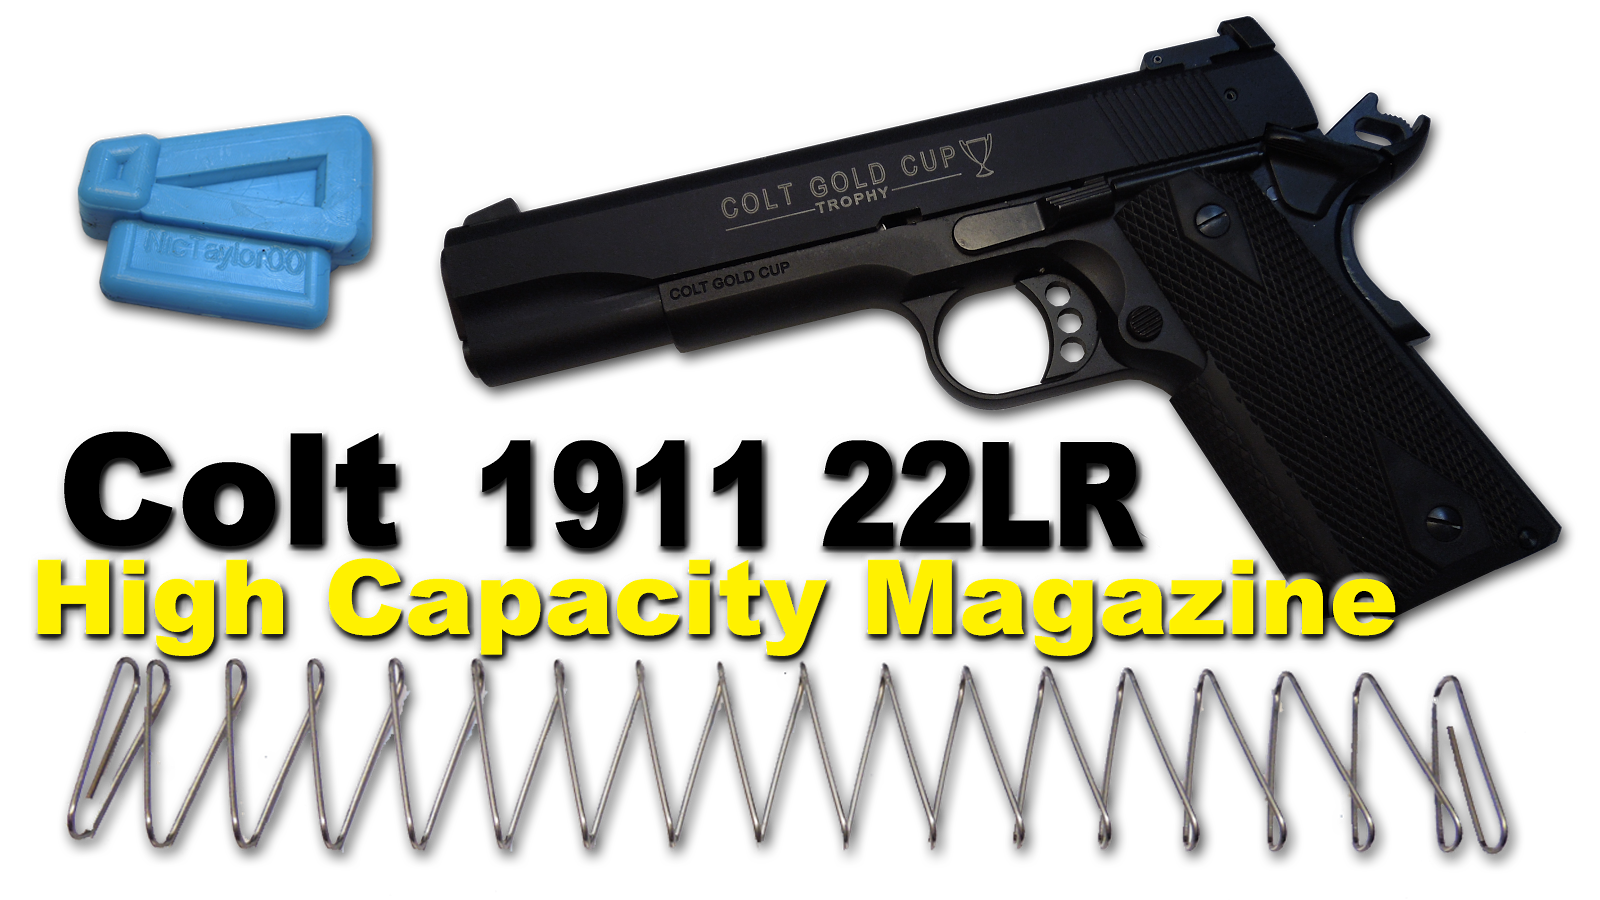 Colt Gold Cup 1911 22lr High Cap Mag